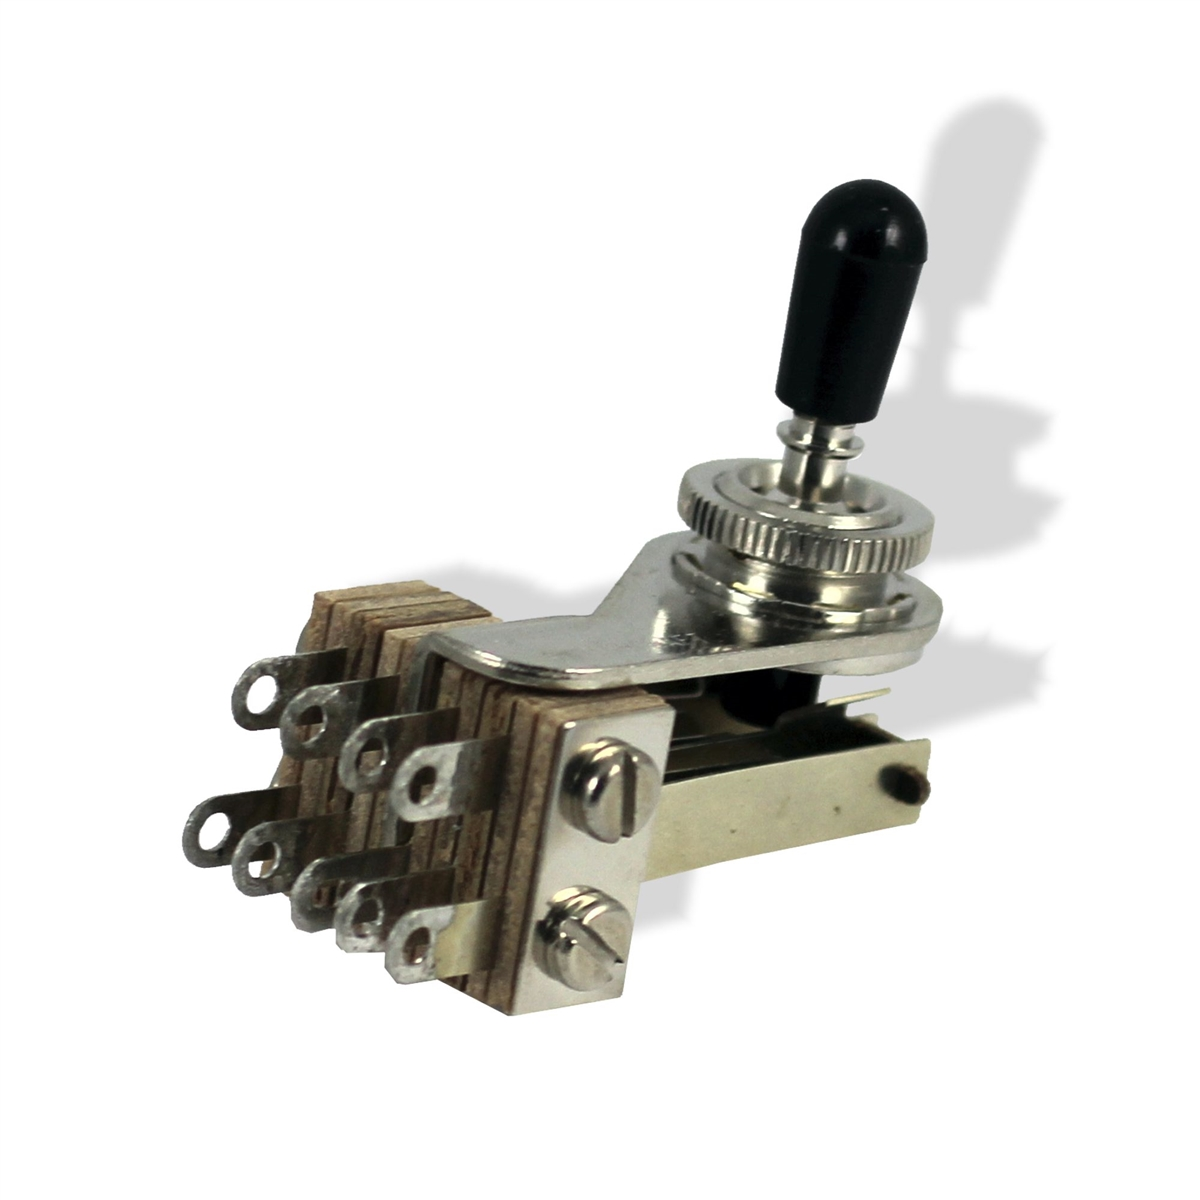 toggle 3 way switch black knob angle [ 1200 x 1200 Pixel ]